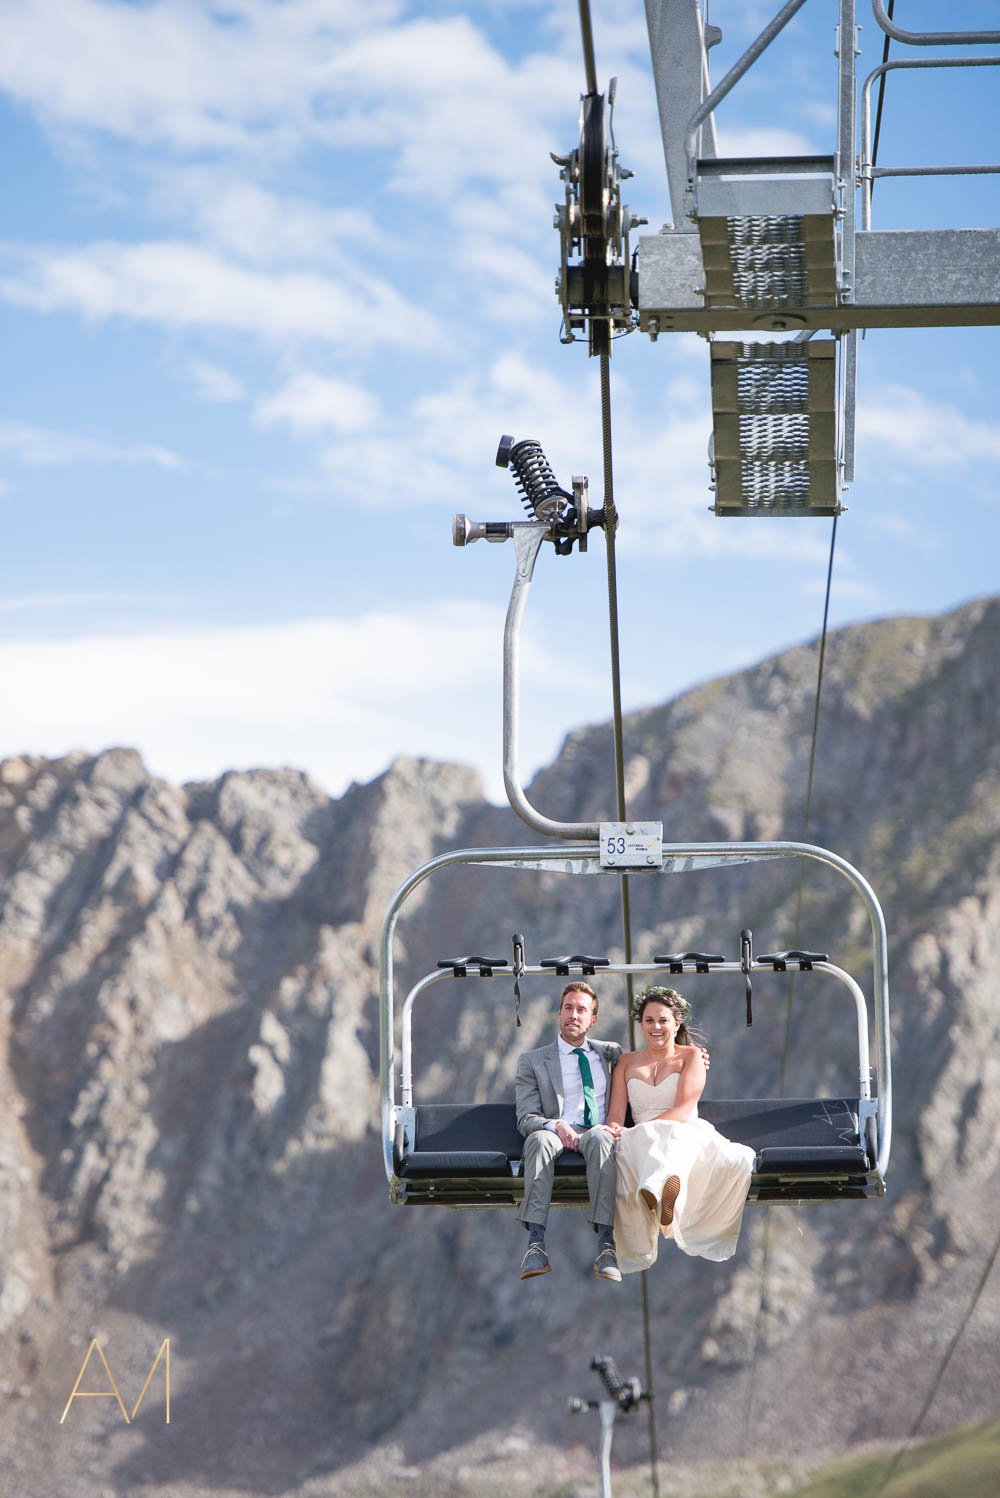 AshleighMillerWeddings-MadeleineAaron-Wedding-ArapahoeBasin-Colorado-3628.jpg